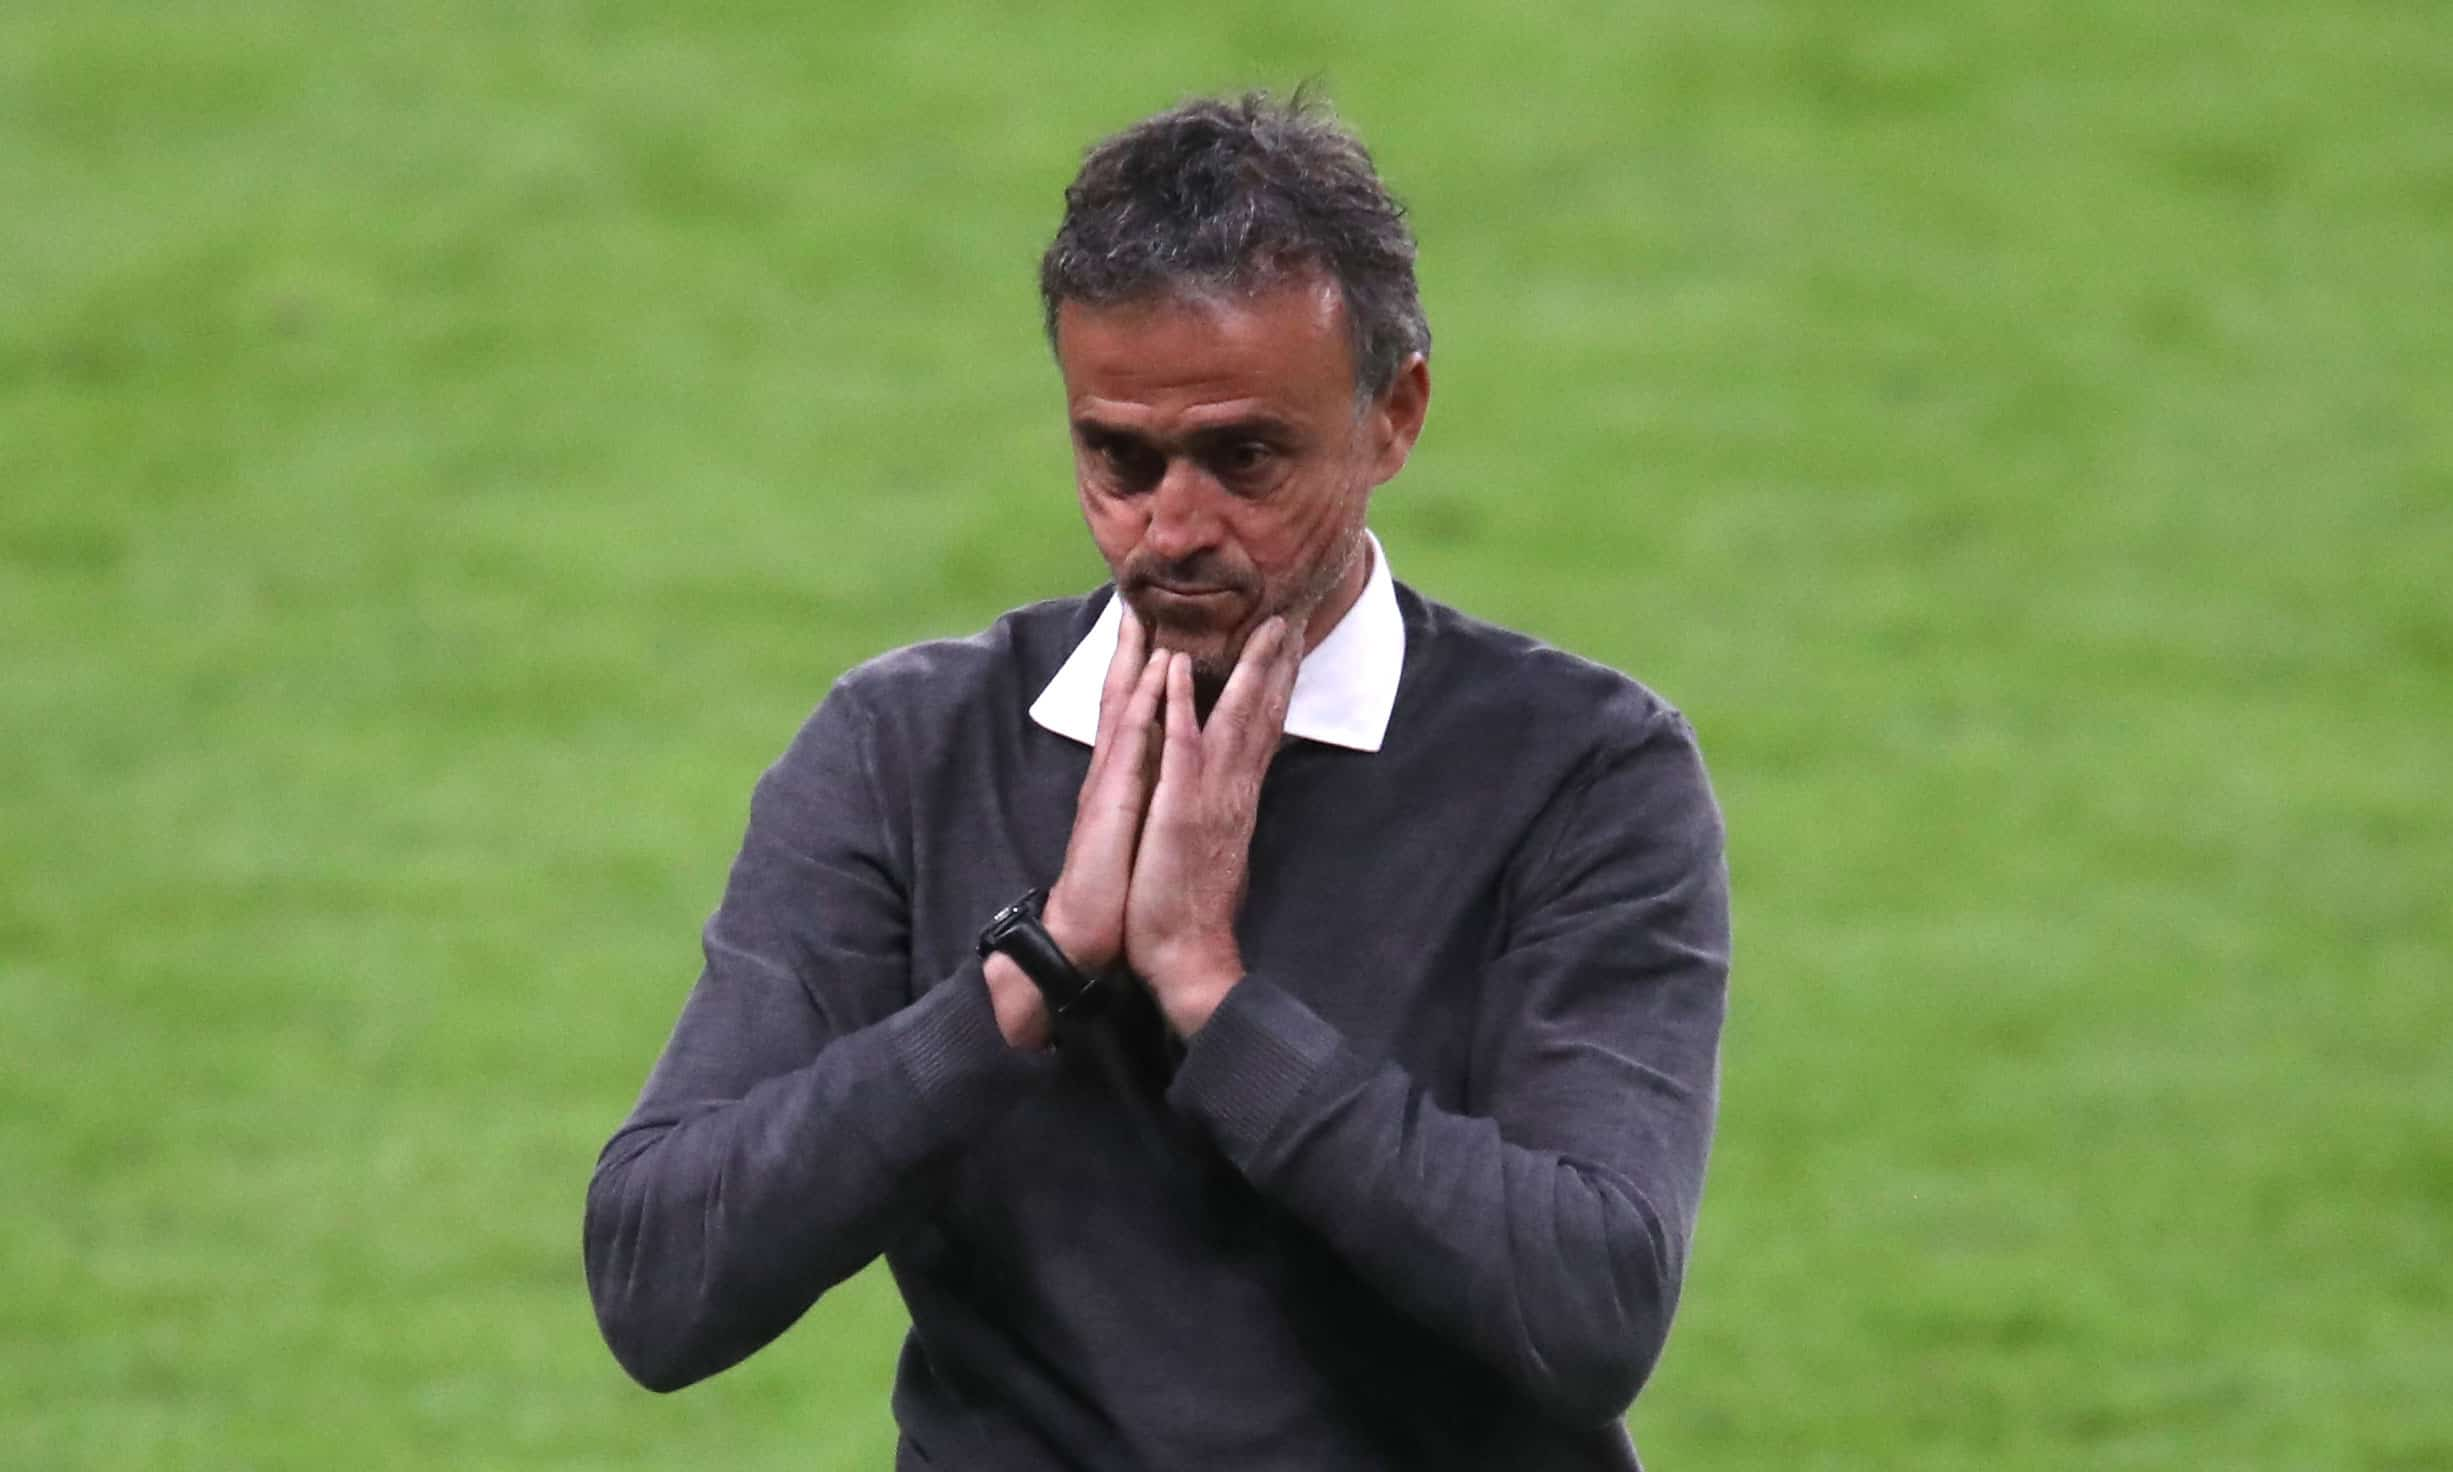 Luis Enrique, Italy v Spain betting tips